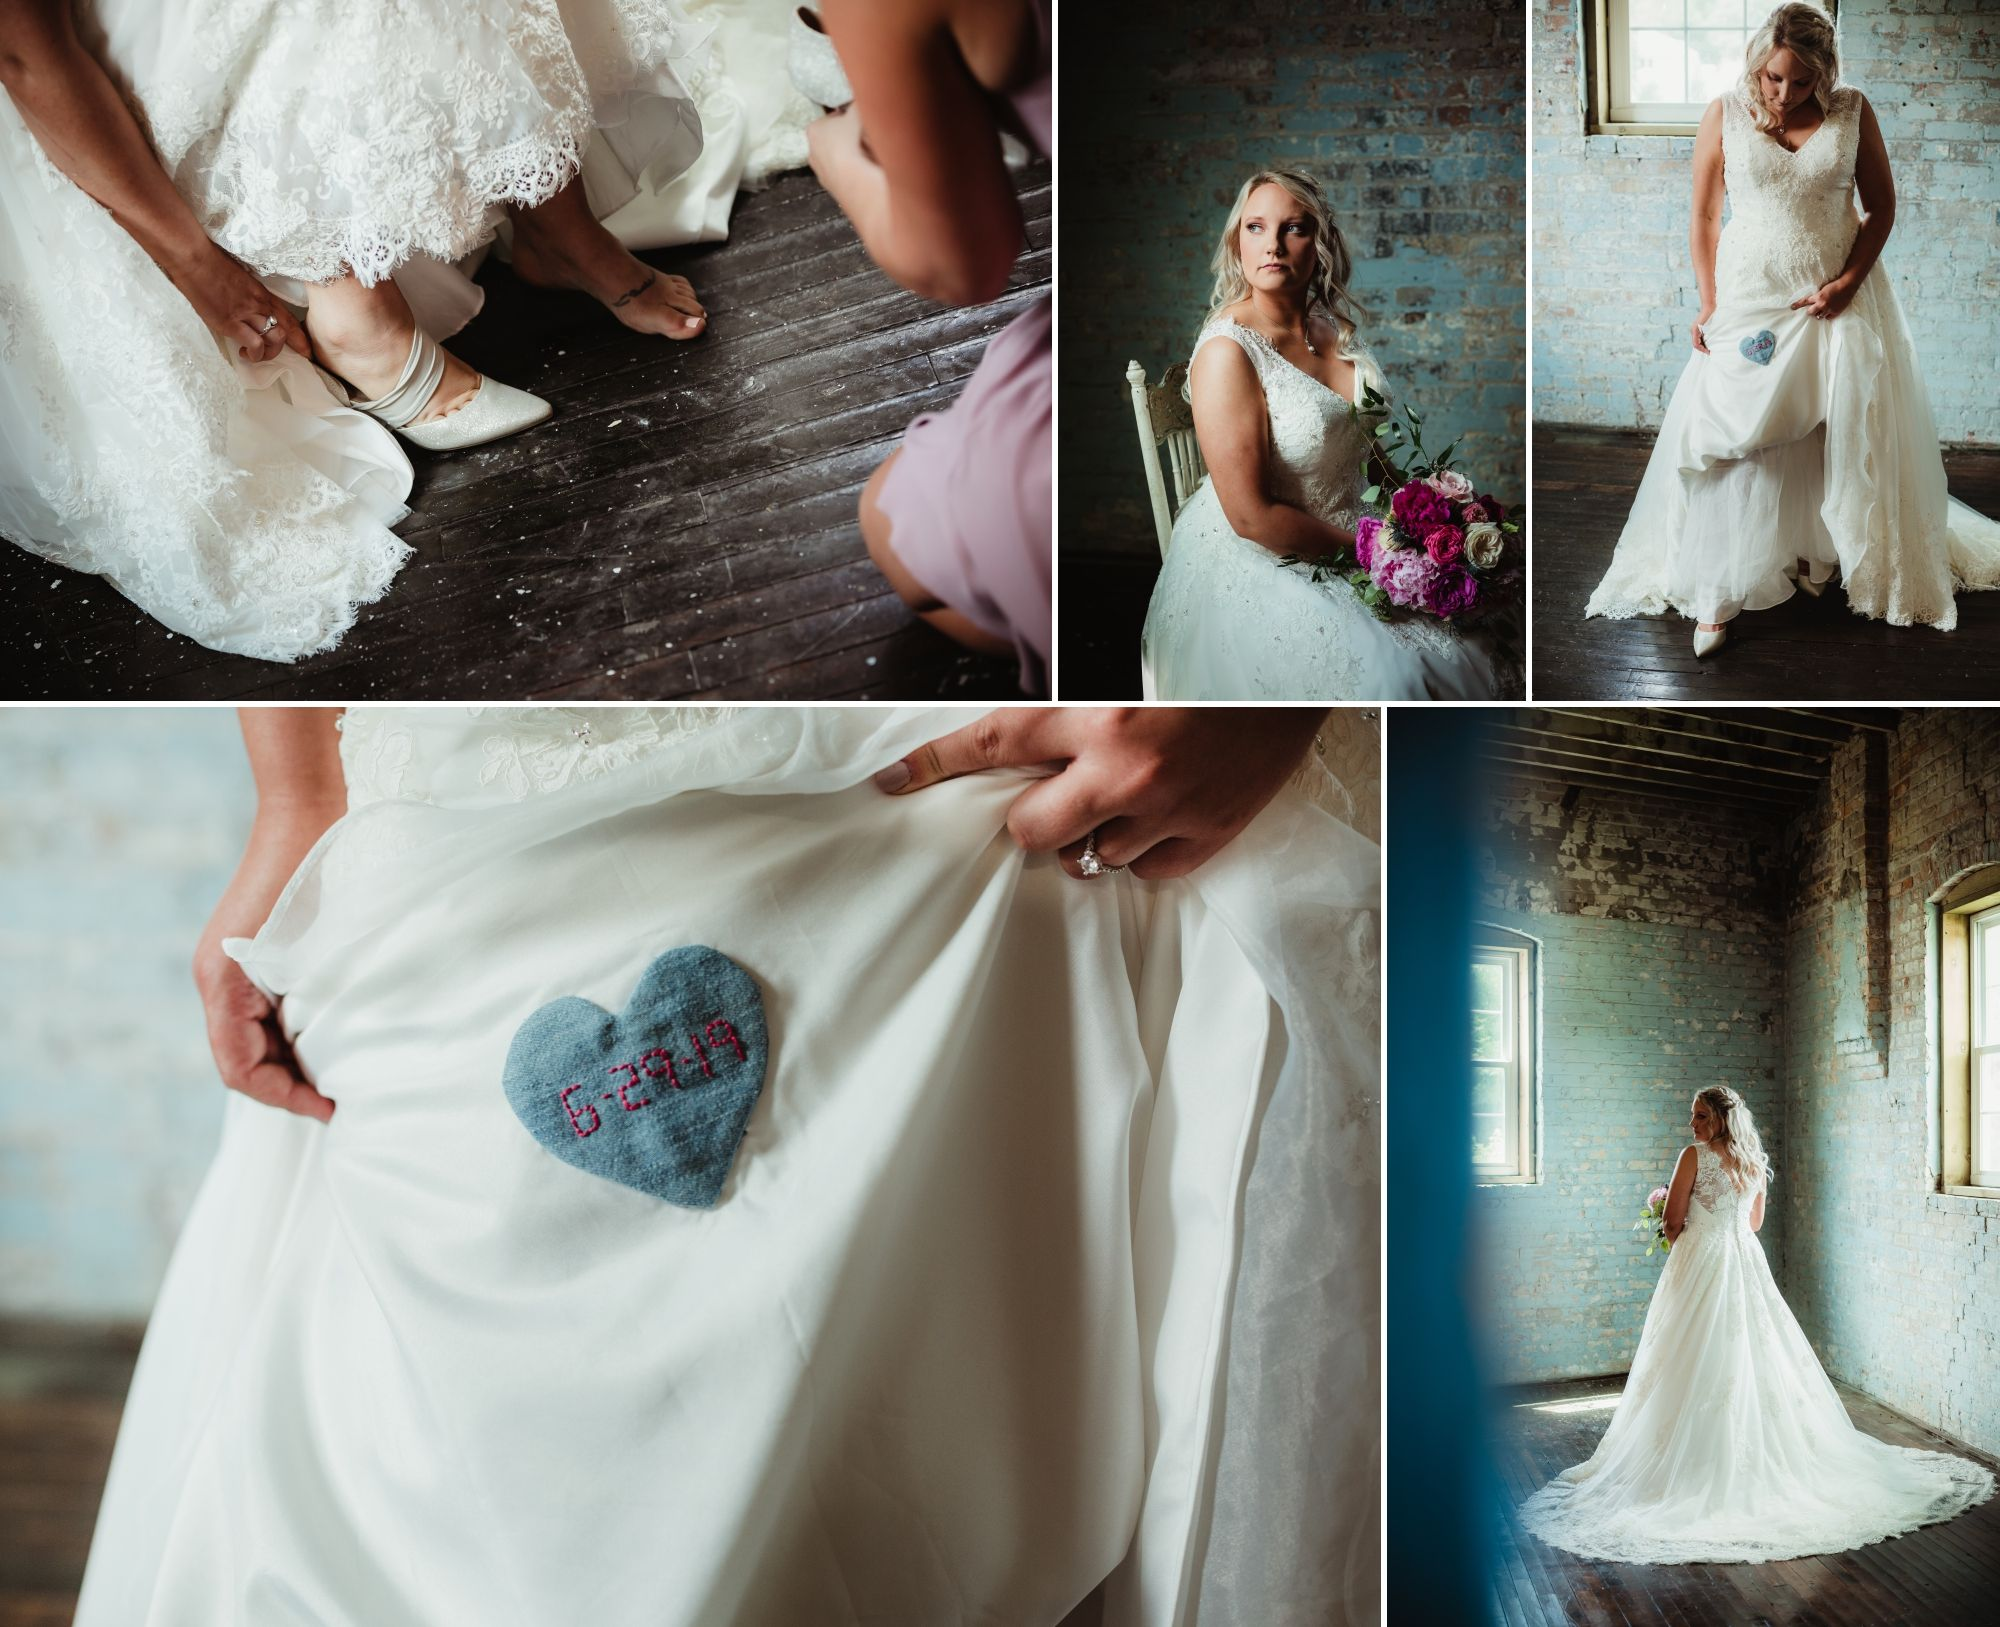 Collage of bride in old blue brick building. A heart of her late father's shirt sewn into her dress.